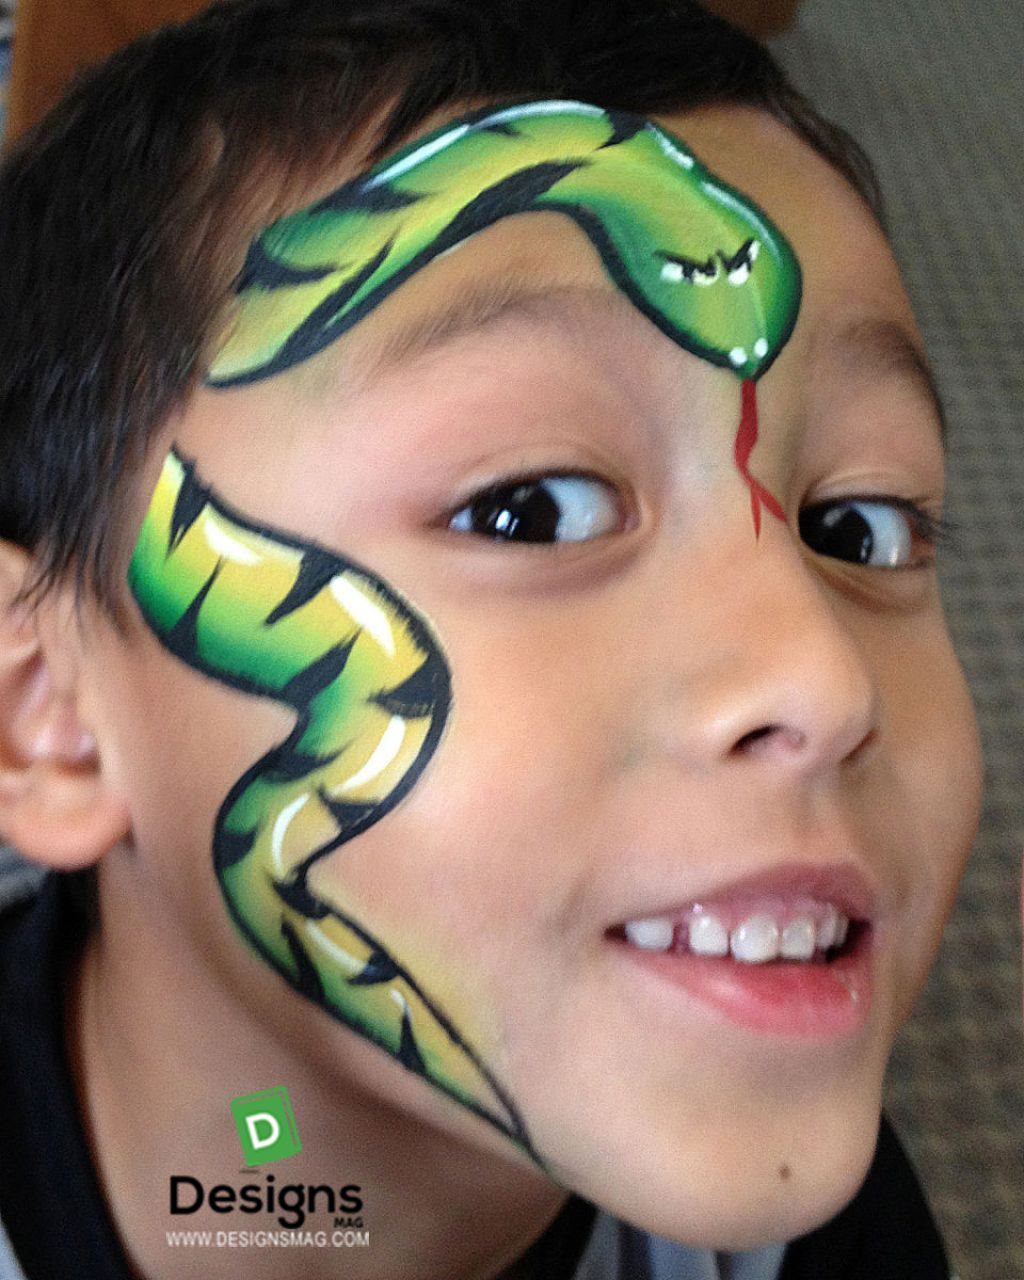 face painting Face painting is one of the most fun and popular activities on the children's party circuit today here's how to paint a beautiful, full-face butterfly.